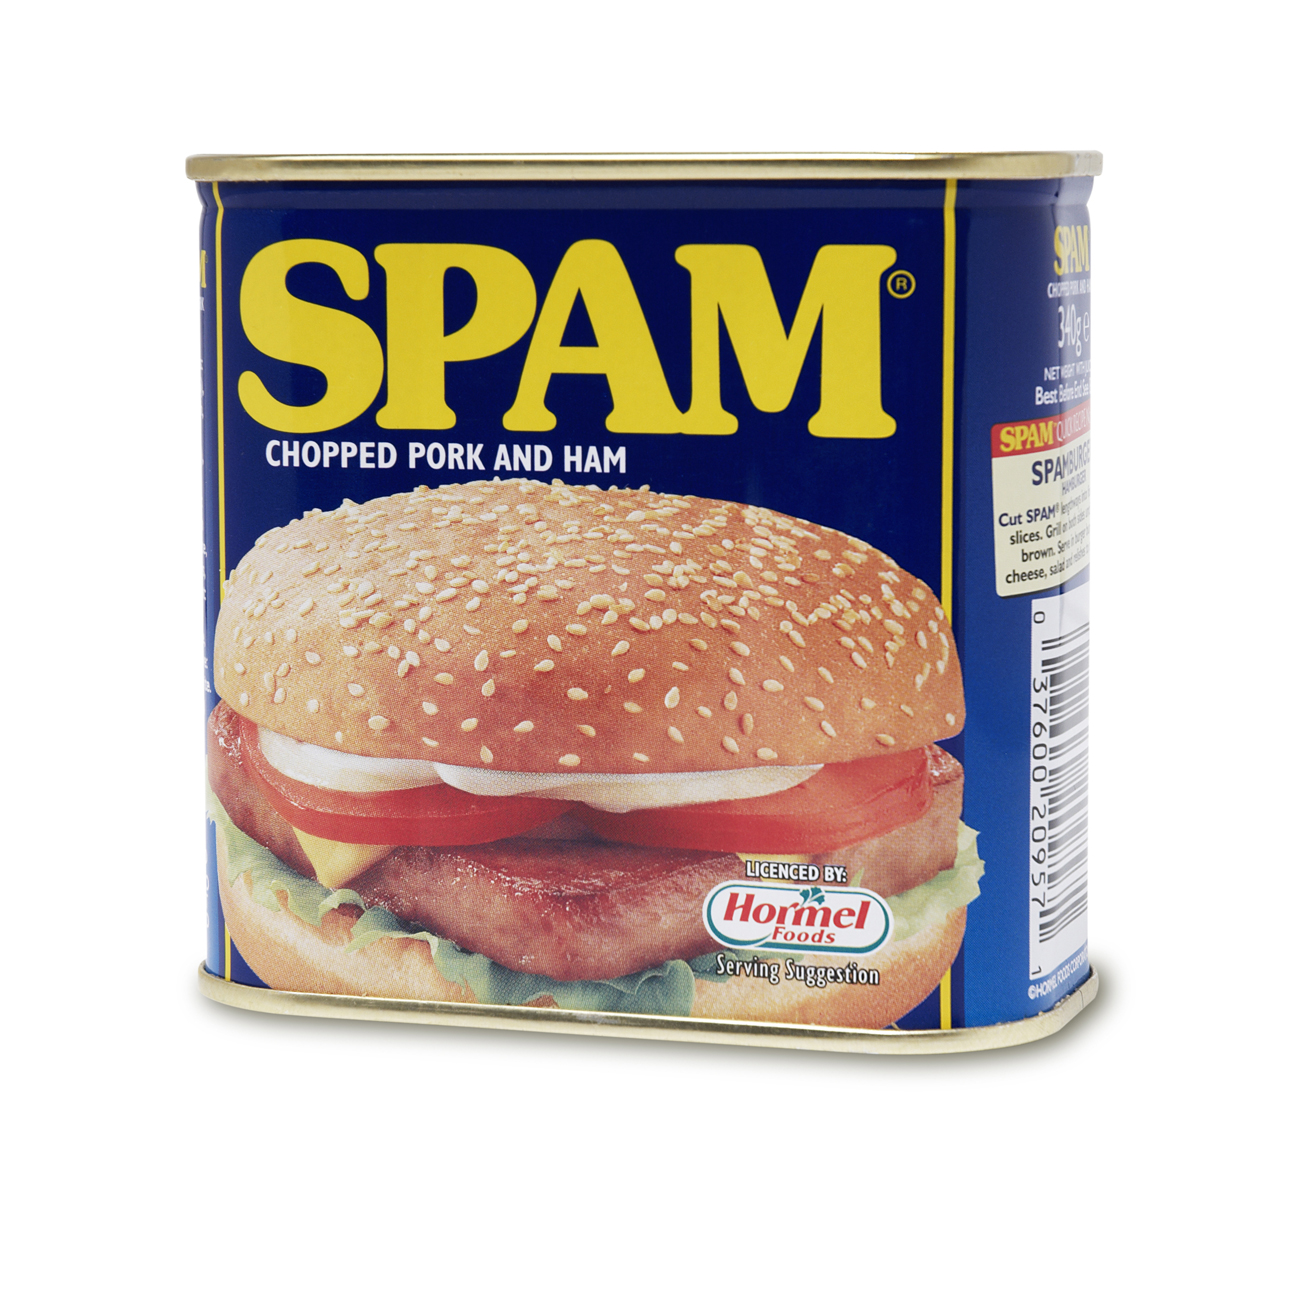 Spam chopped pork and ham tin